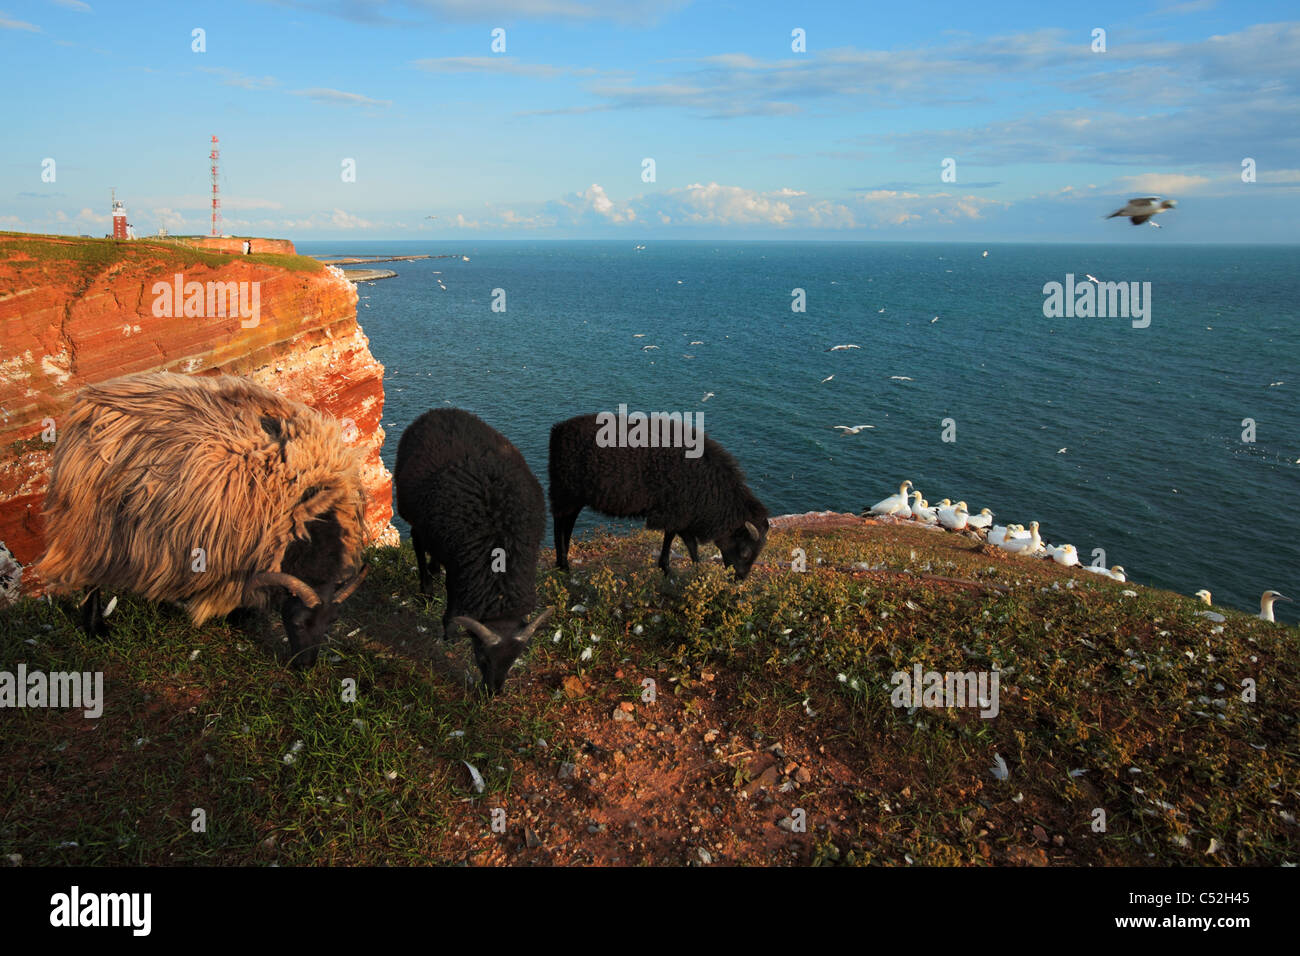 sheeps on the red bird cliff on island Heligoland (Helgoland); gannets sanctuary and the Heligoland lighthouse in - Stock Image